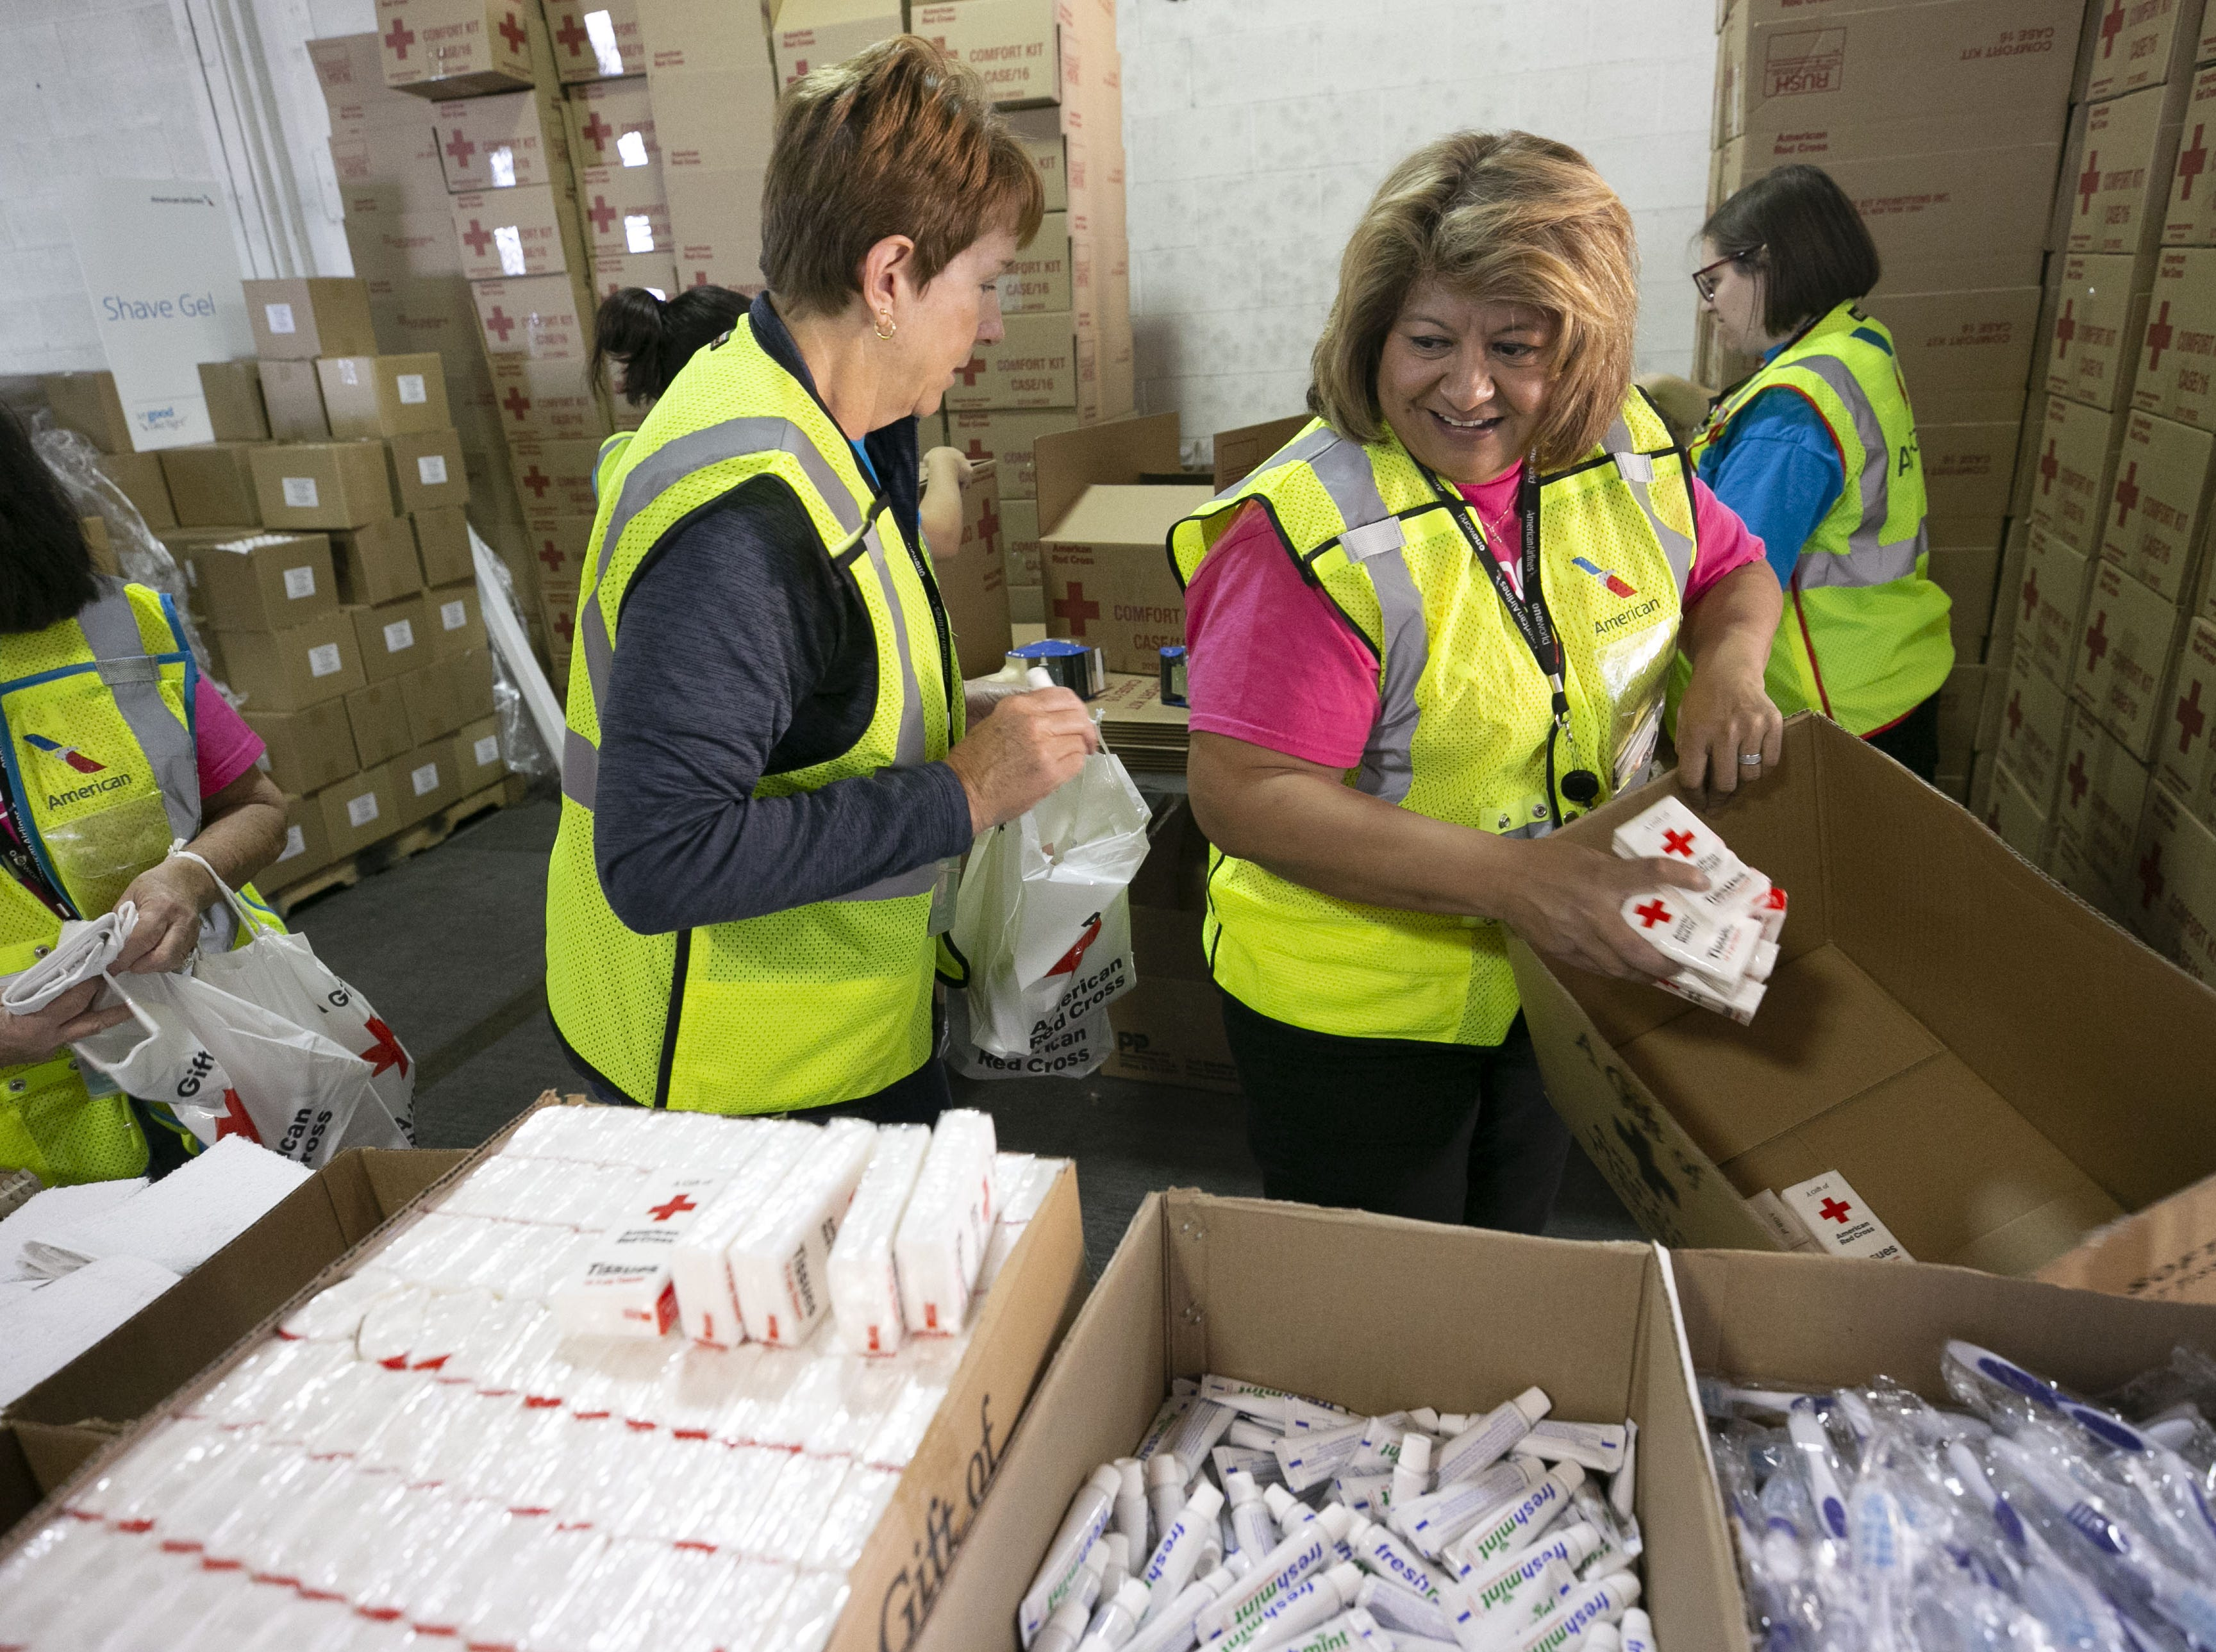 American Airlines employees Lore Taylor (left) and Maria Castro package amenity kits for the victims of the California wildfires, at the American Airlines cargo facility in Phoenix on Tuesday, Nov. 27, 2018.